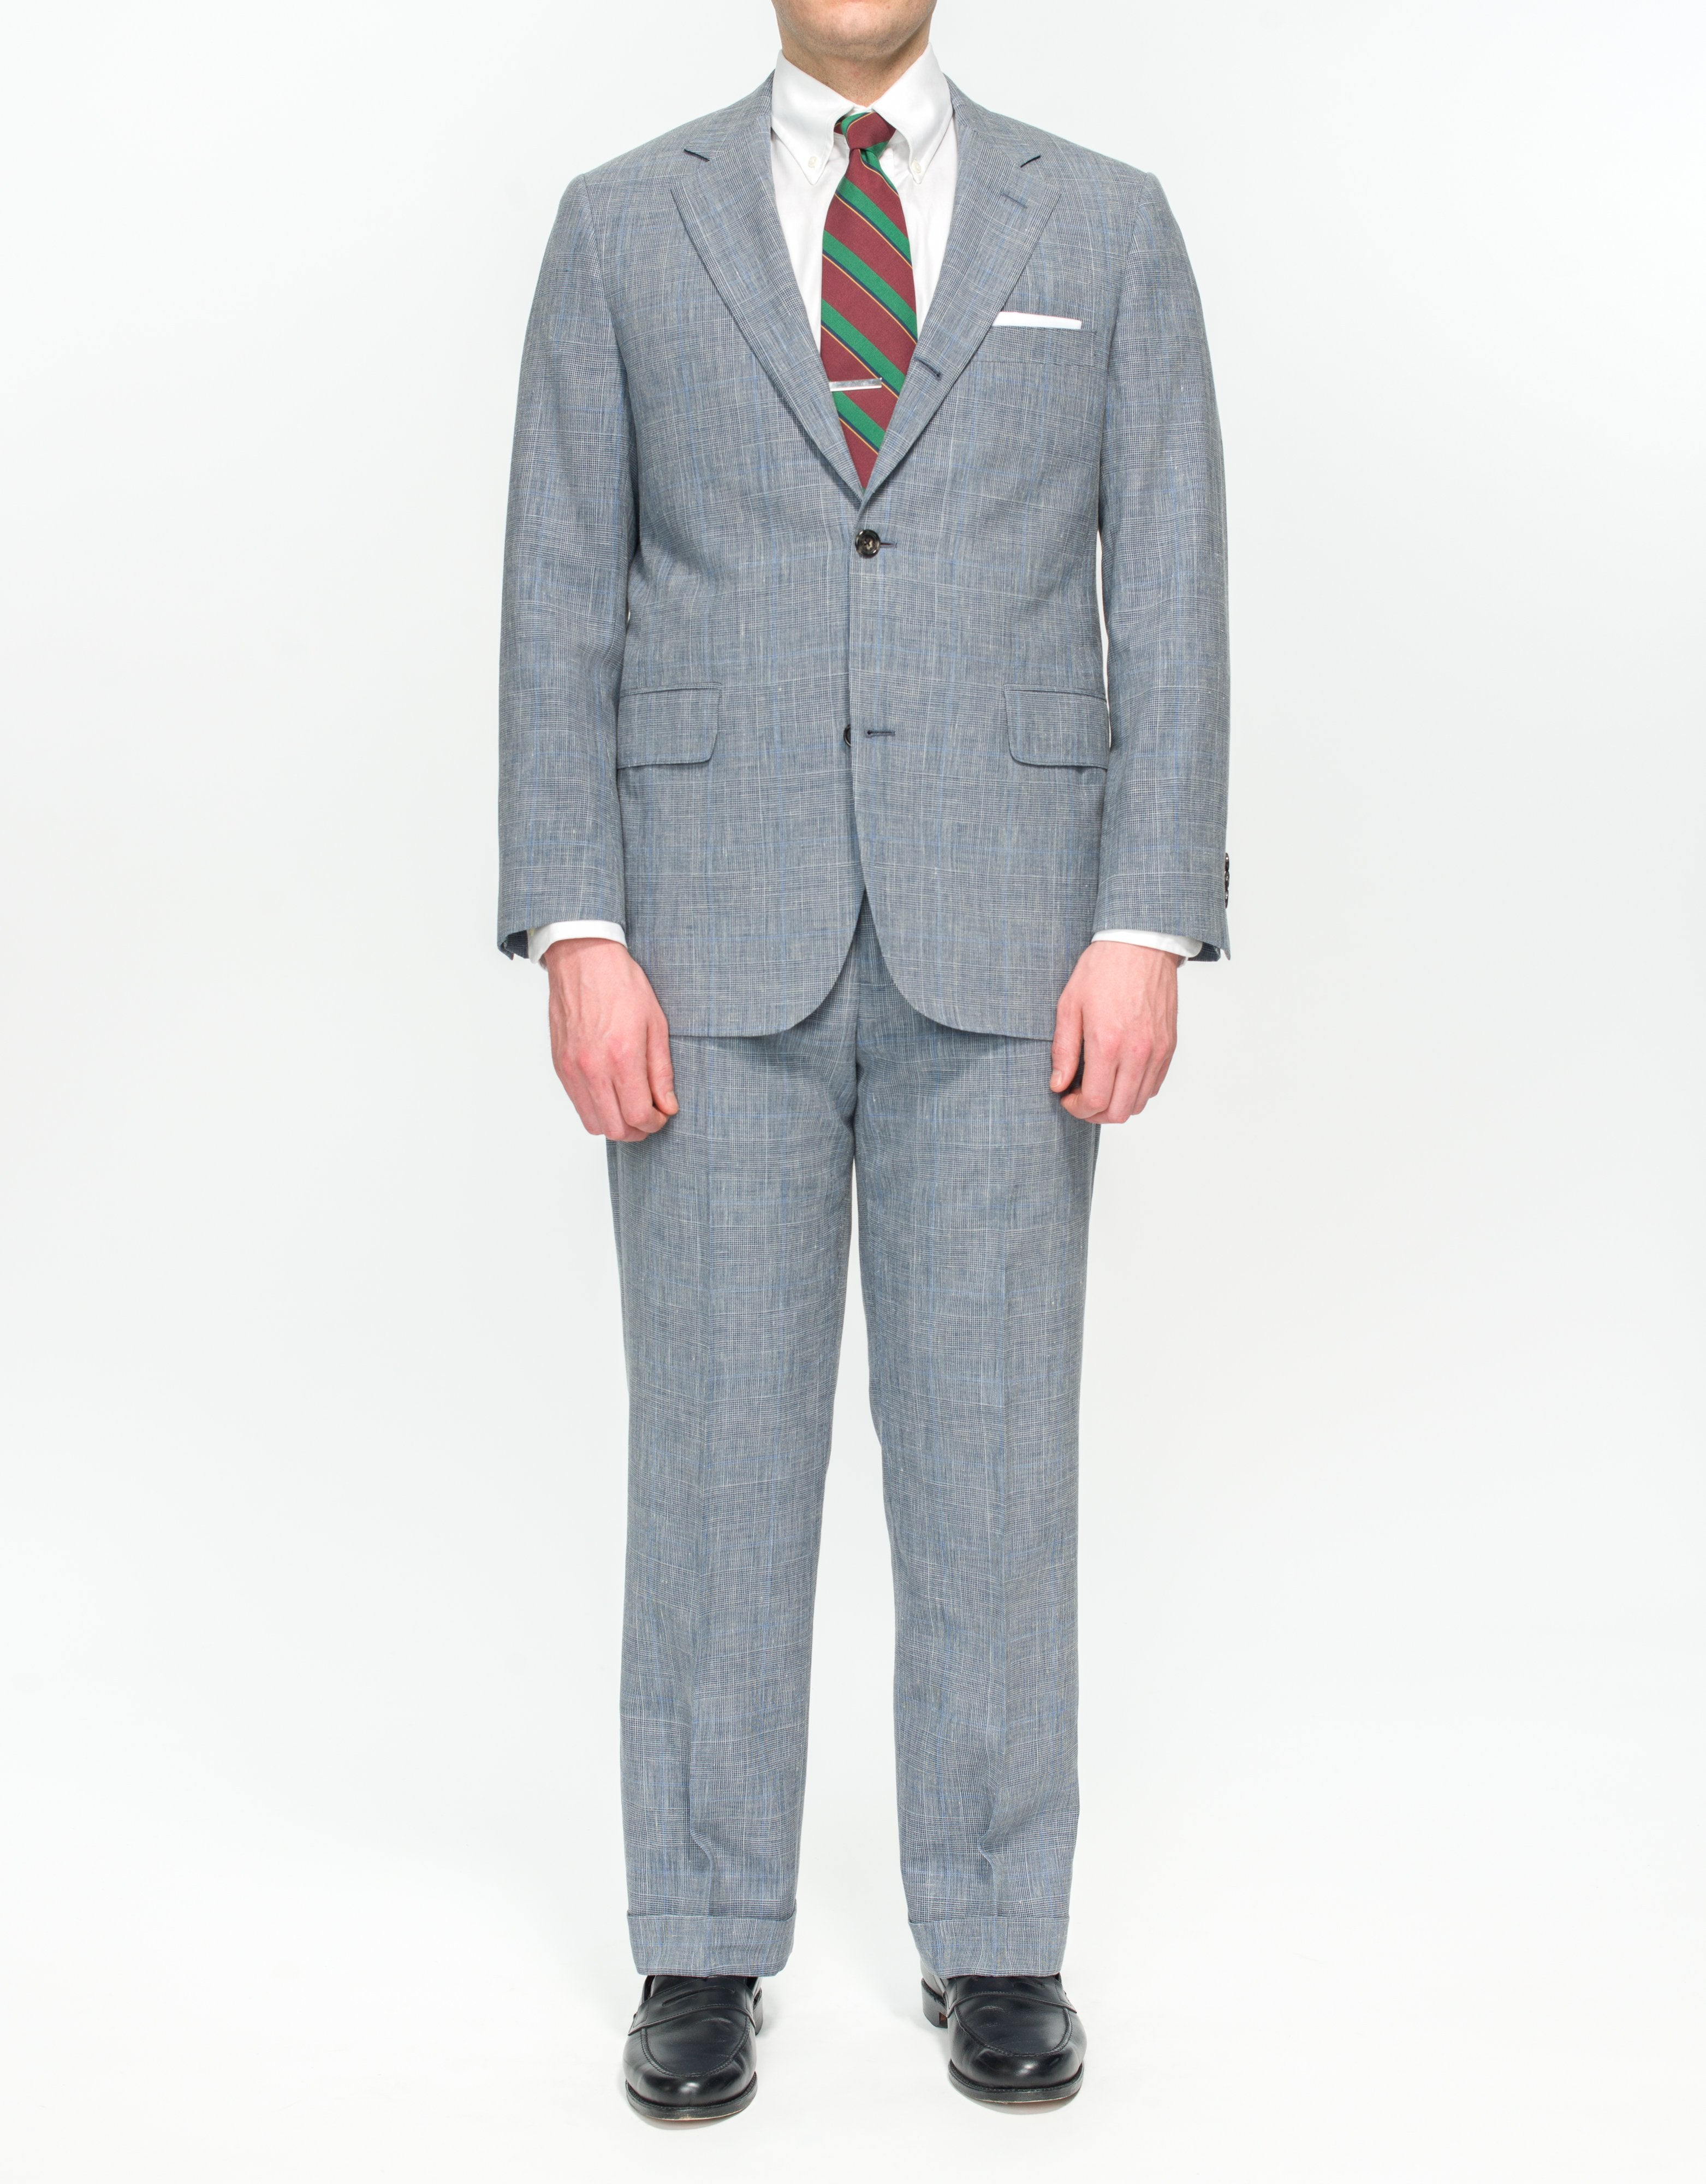 PRESSIDENTIAL SUIT- GREY GLEN CHECK WITH BLUE PANE